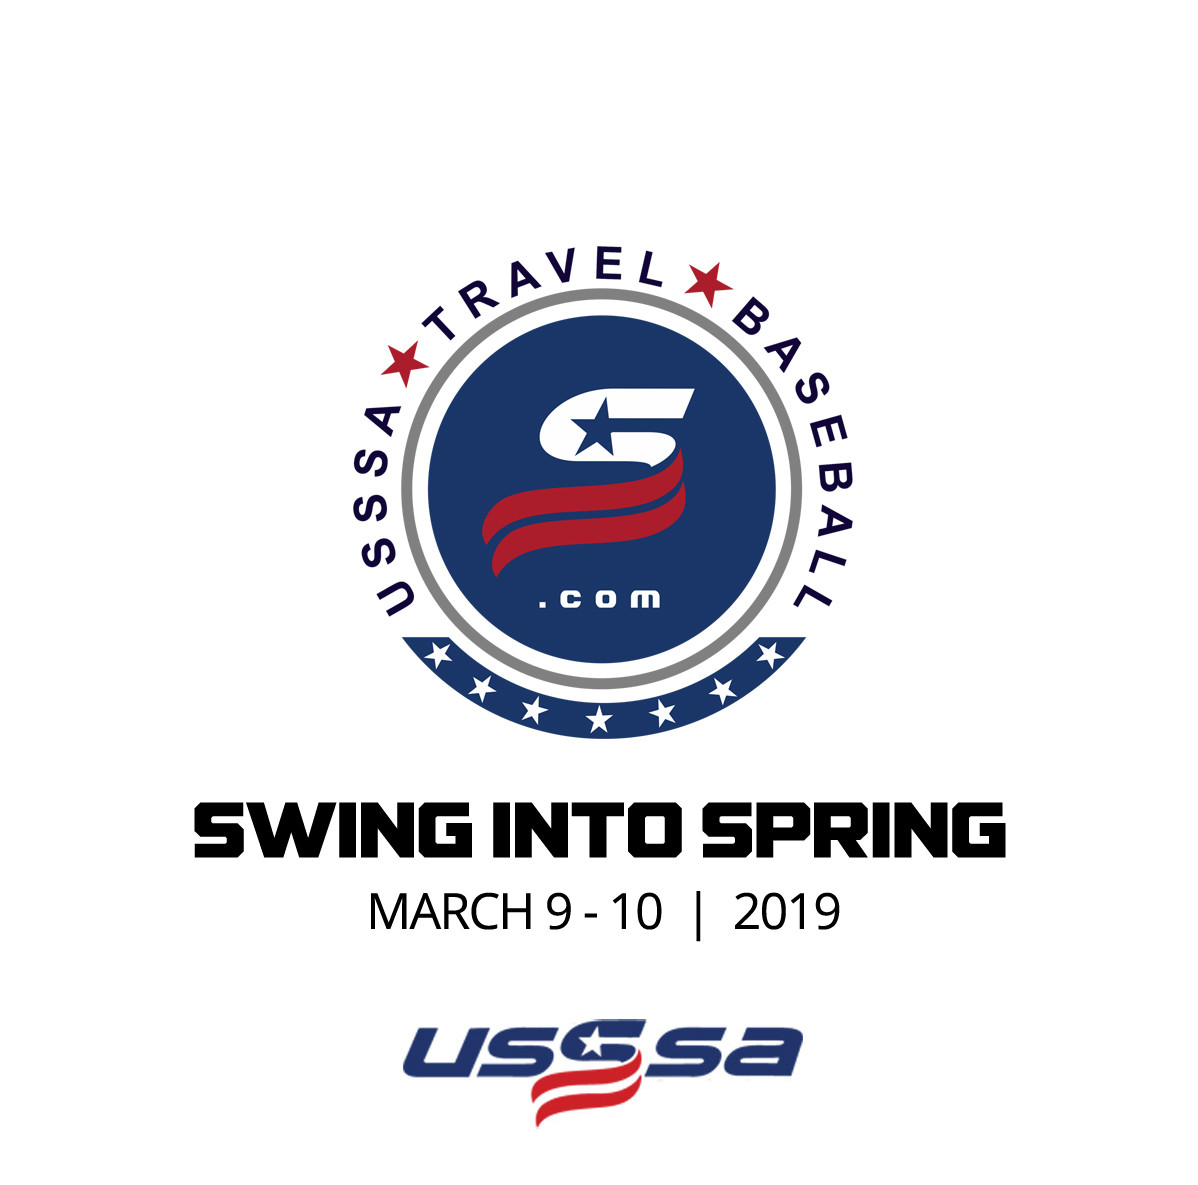 Upstate - Swing into Spring